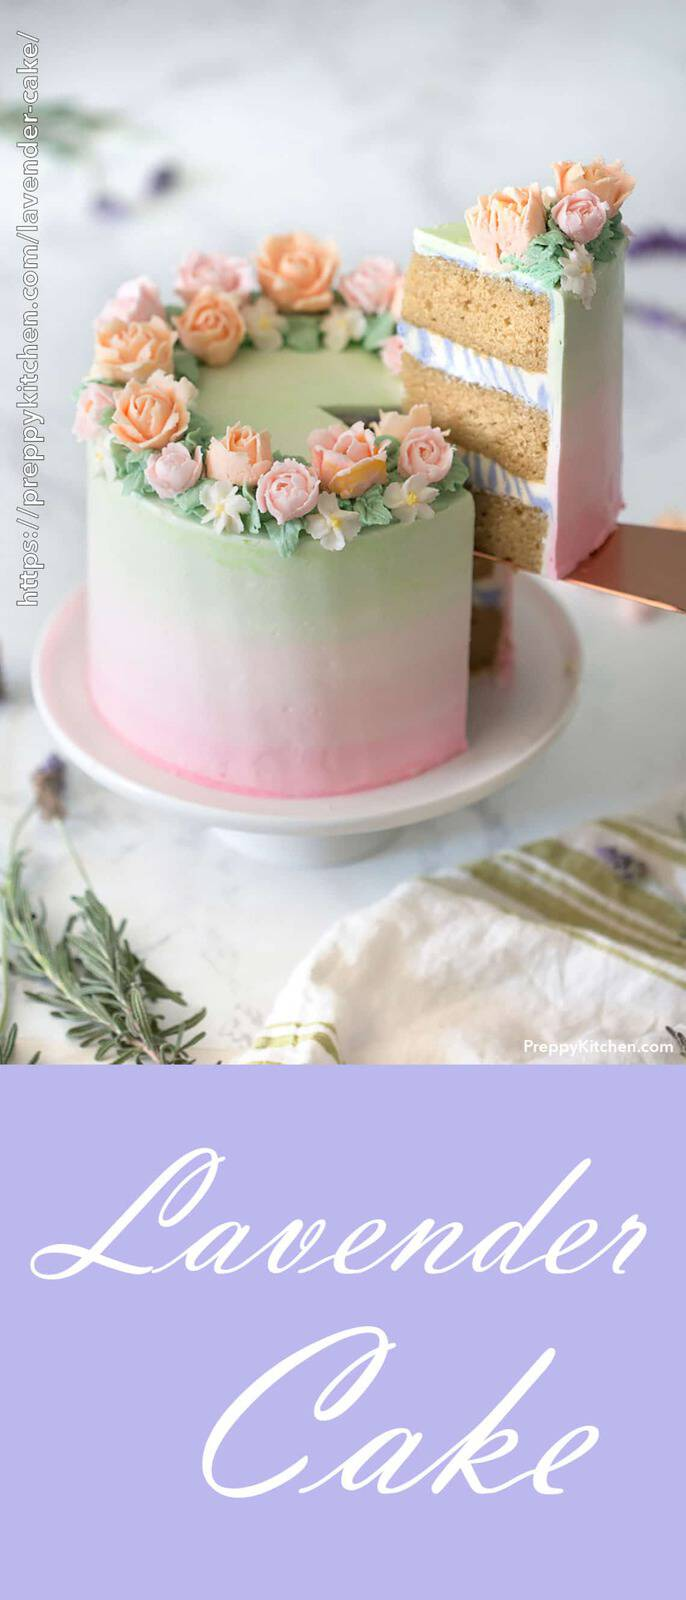 A pink to green ombre cake with orange and pink flowers and a piece out